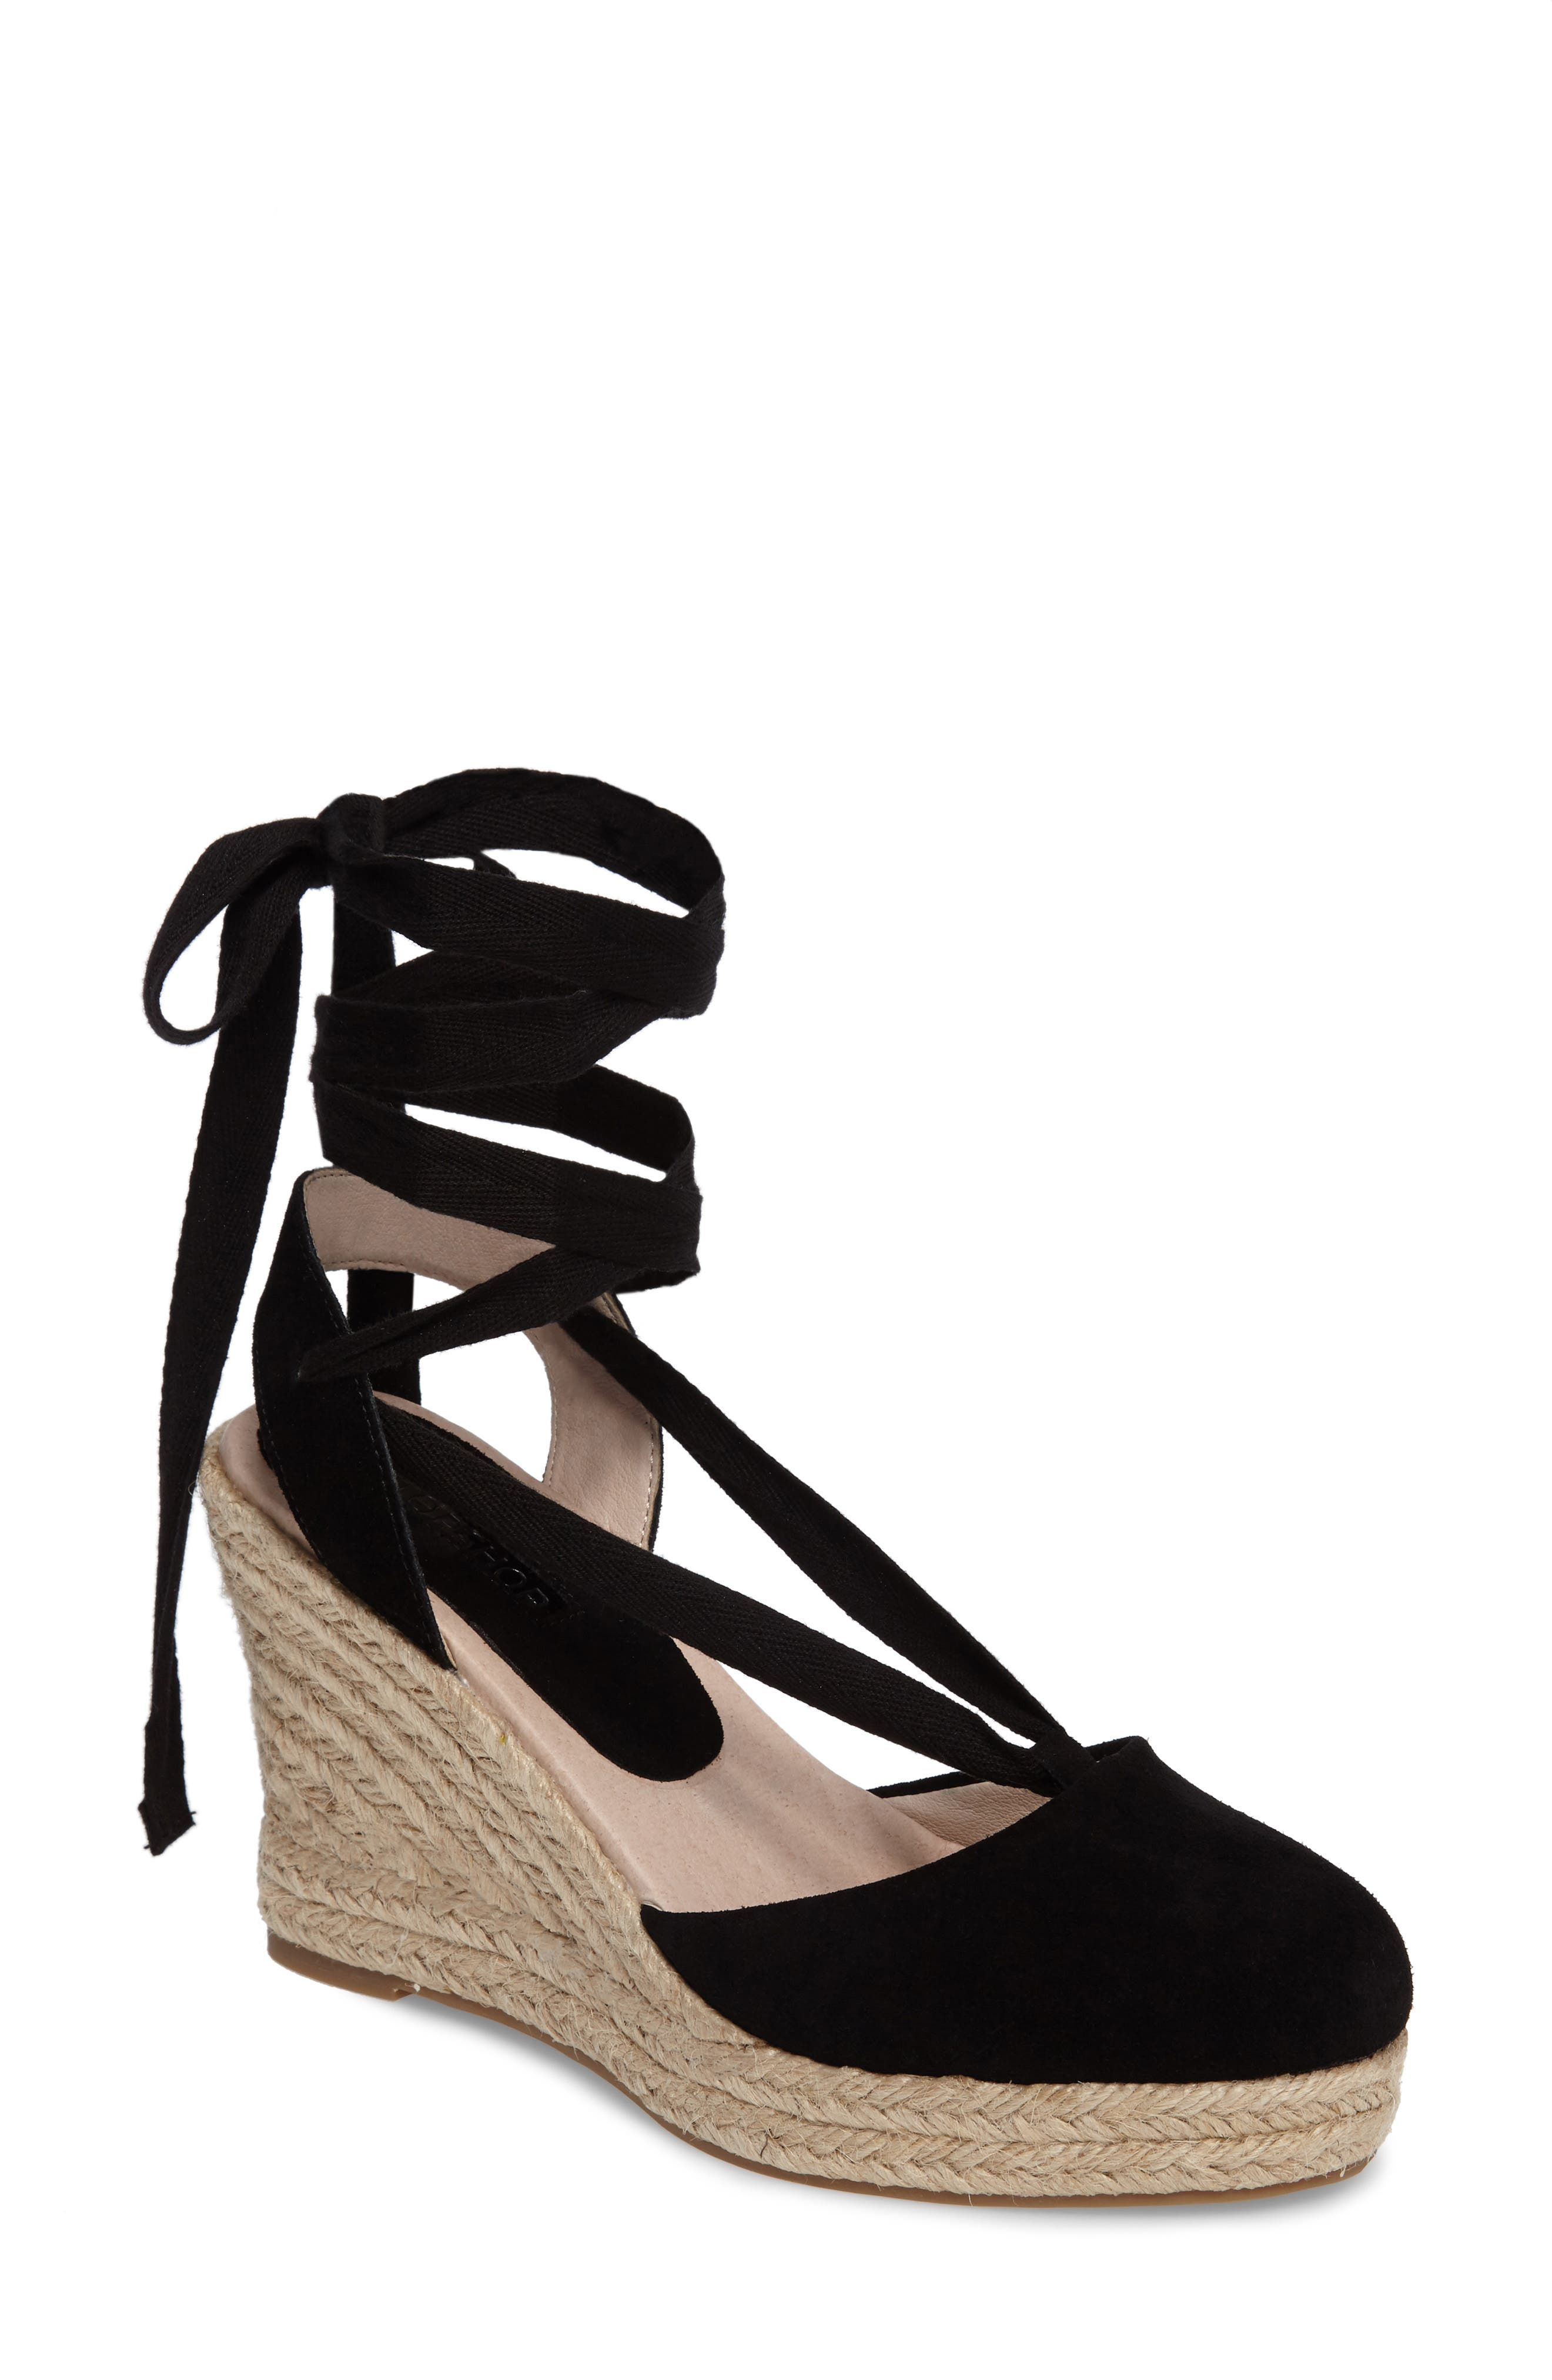 TOPSHOP, Waves Espadrille Wedge, Main thumbnail 1, color, 001